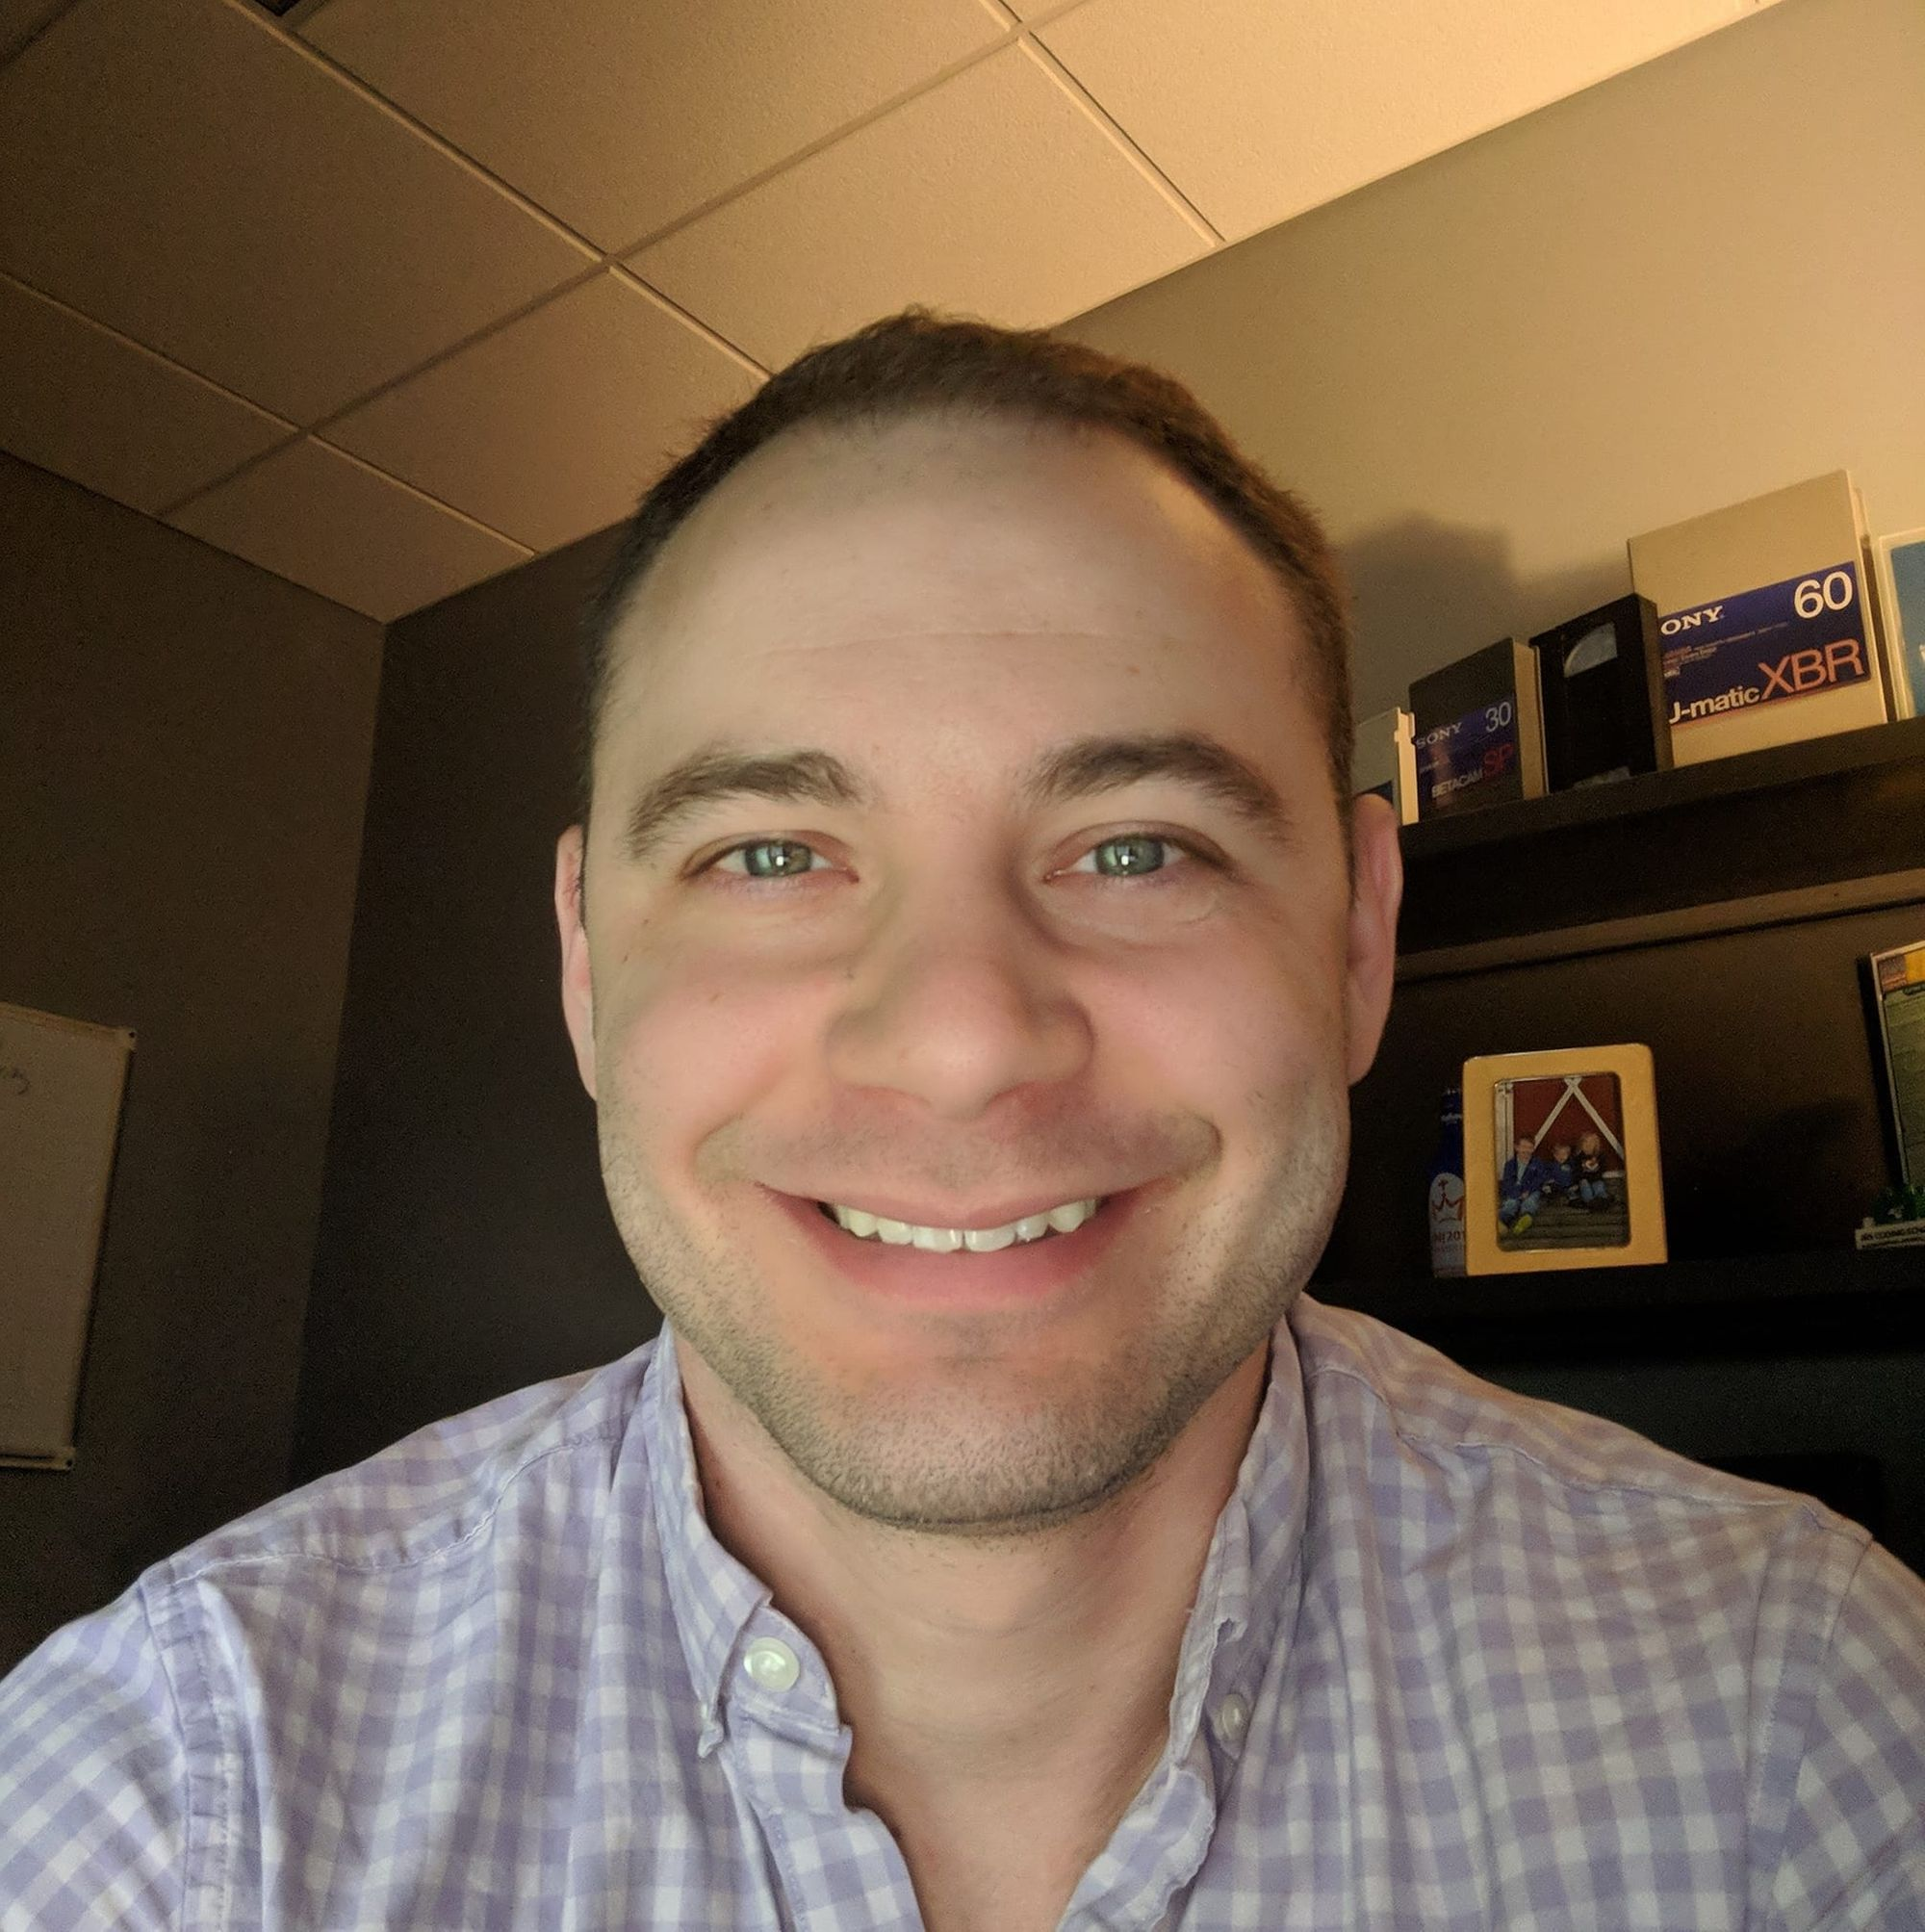 Podcast: Building community and career through live streaming - an interview with Jesse Weigel